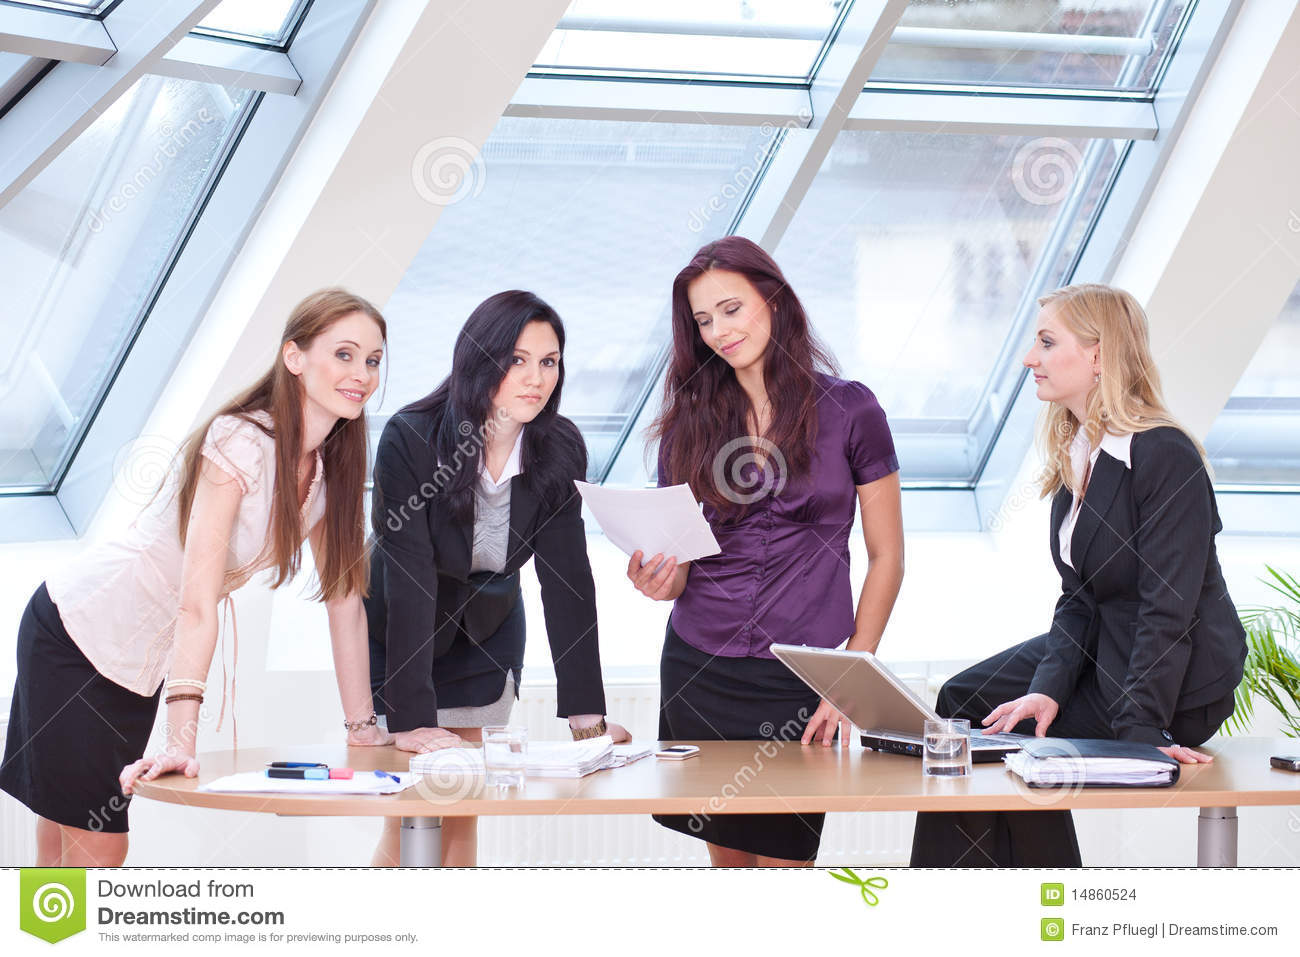 Discussing at the desk